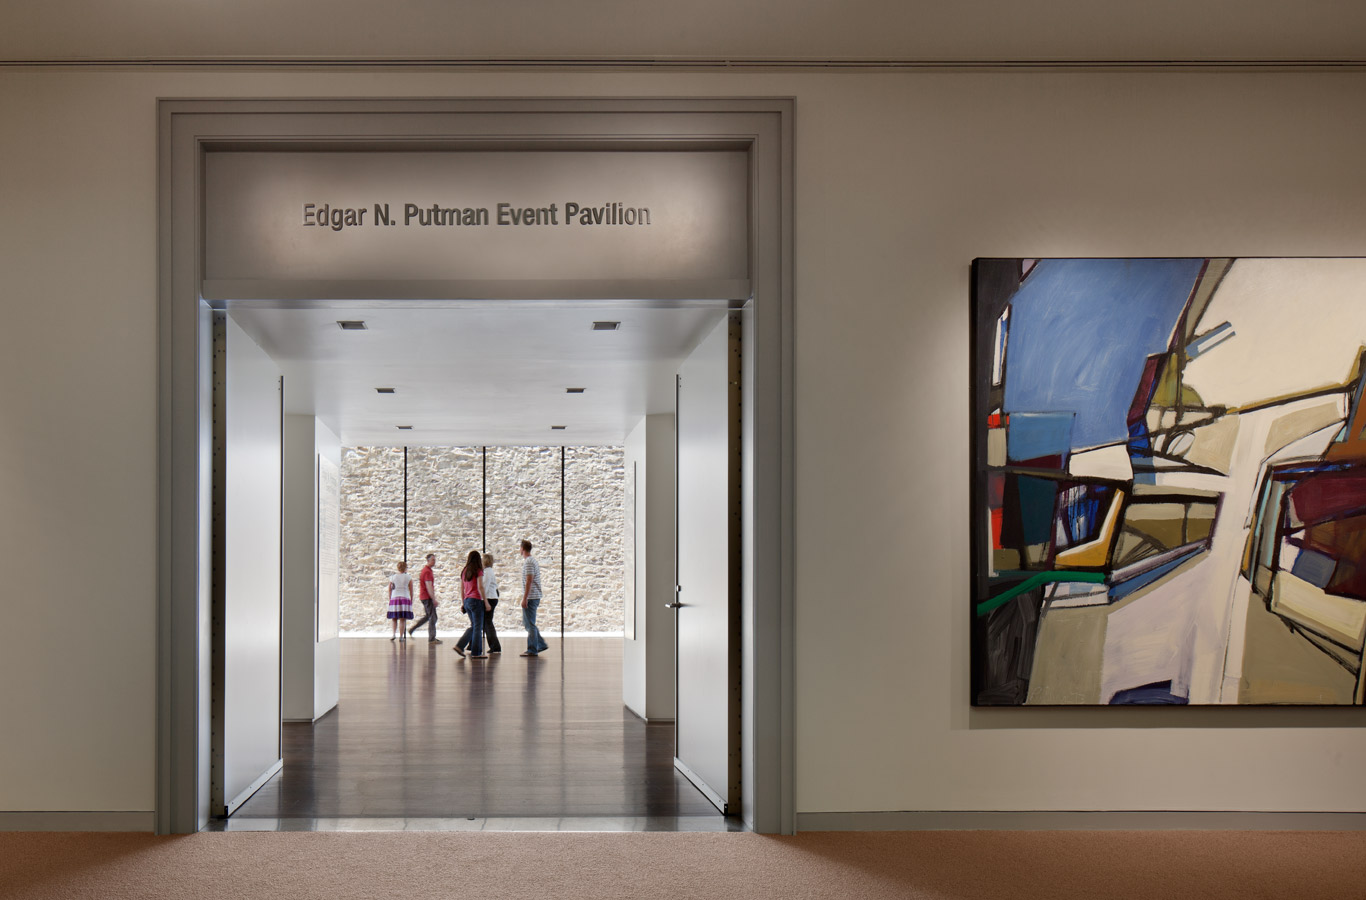 <p>Situated at the back of the museum, the pavilion draws visitors through the corridors and encourages them to experience the art. <br><small>&copy; Michael Moran/OTTO</small></p>